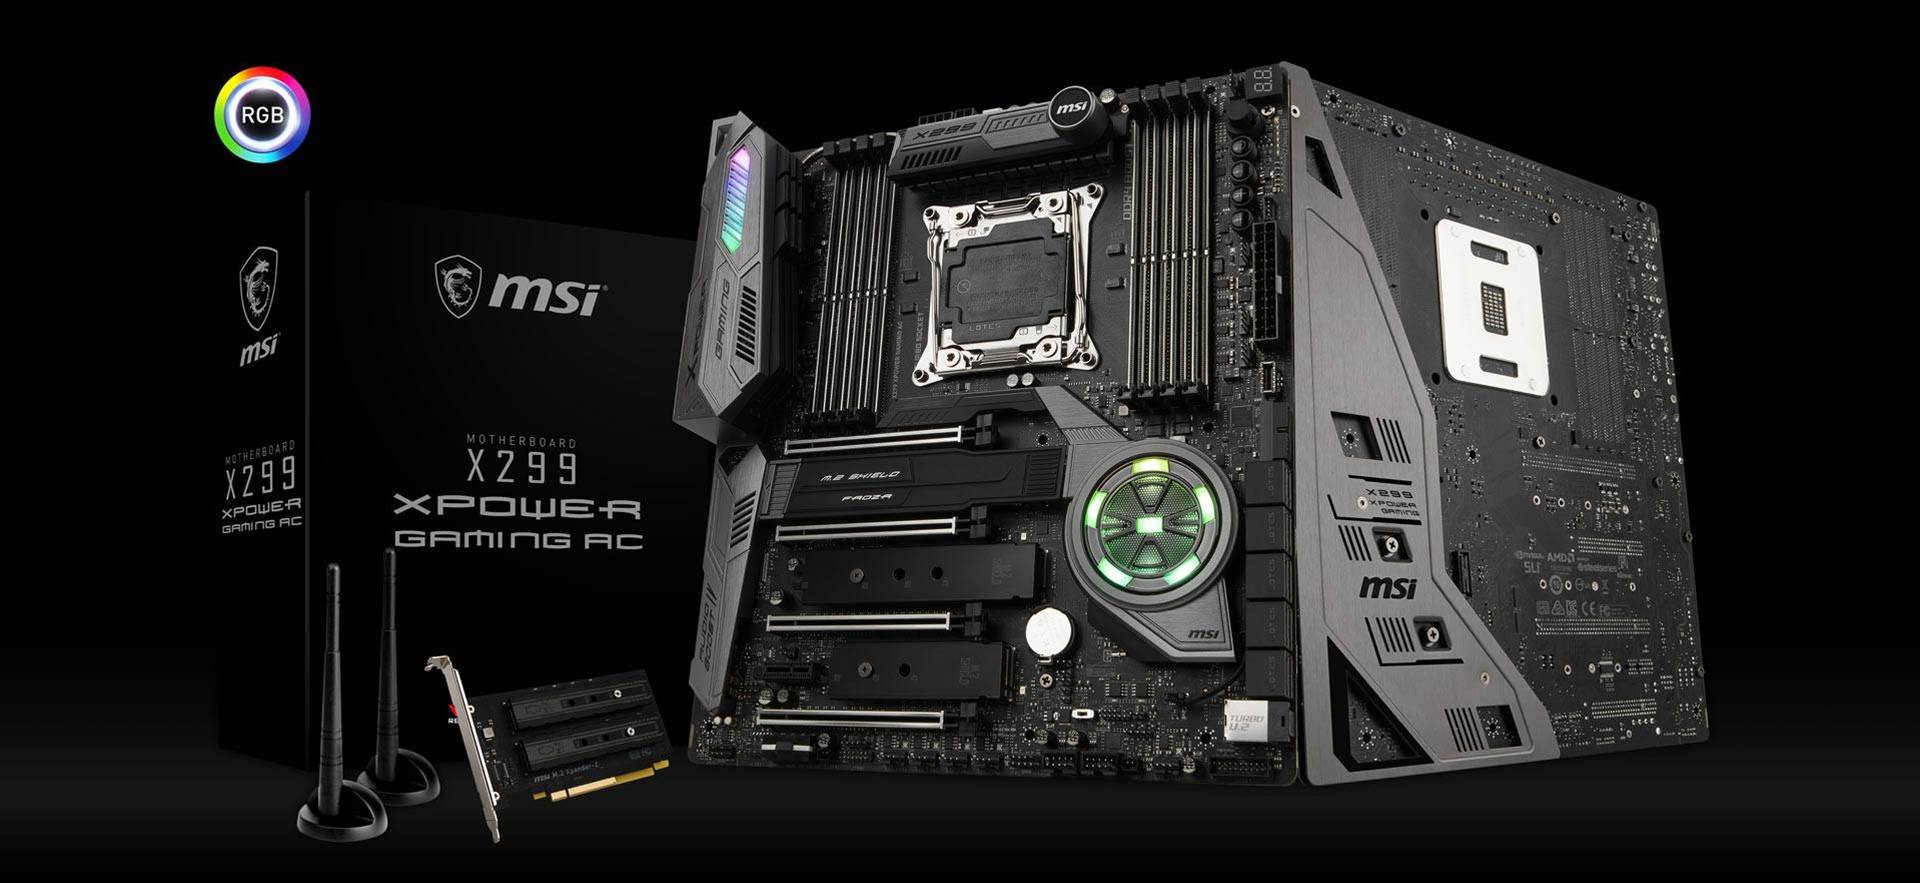 MSI reveals 14-phase X299 XPOWER GAMING AC motherboard